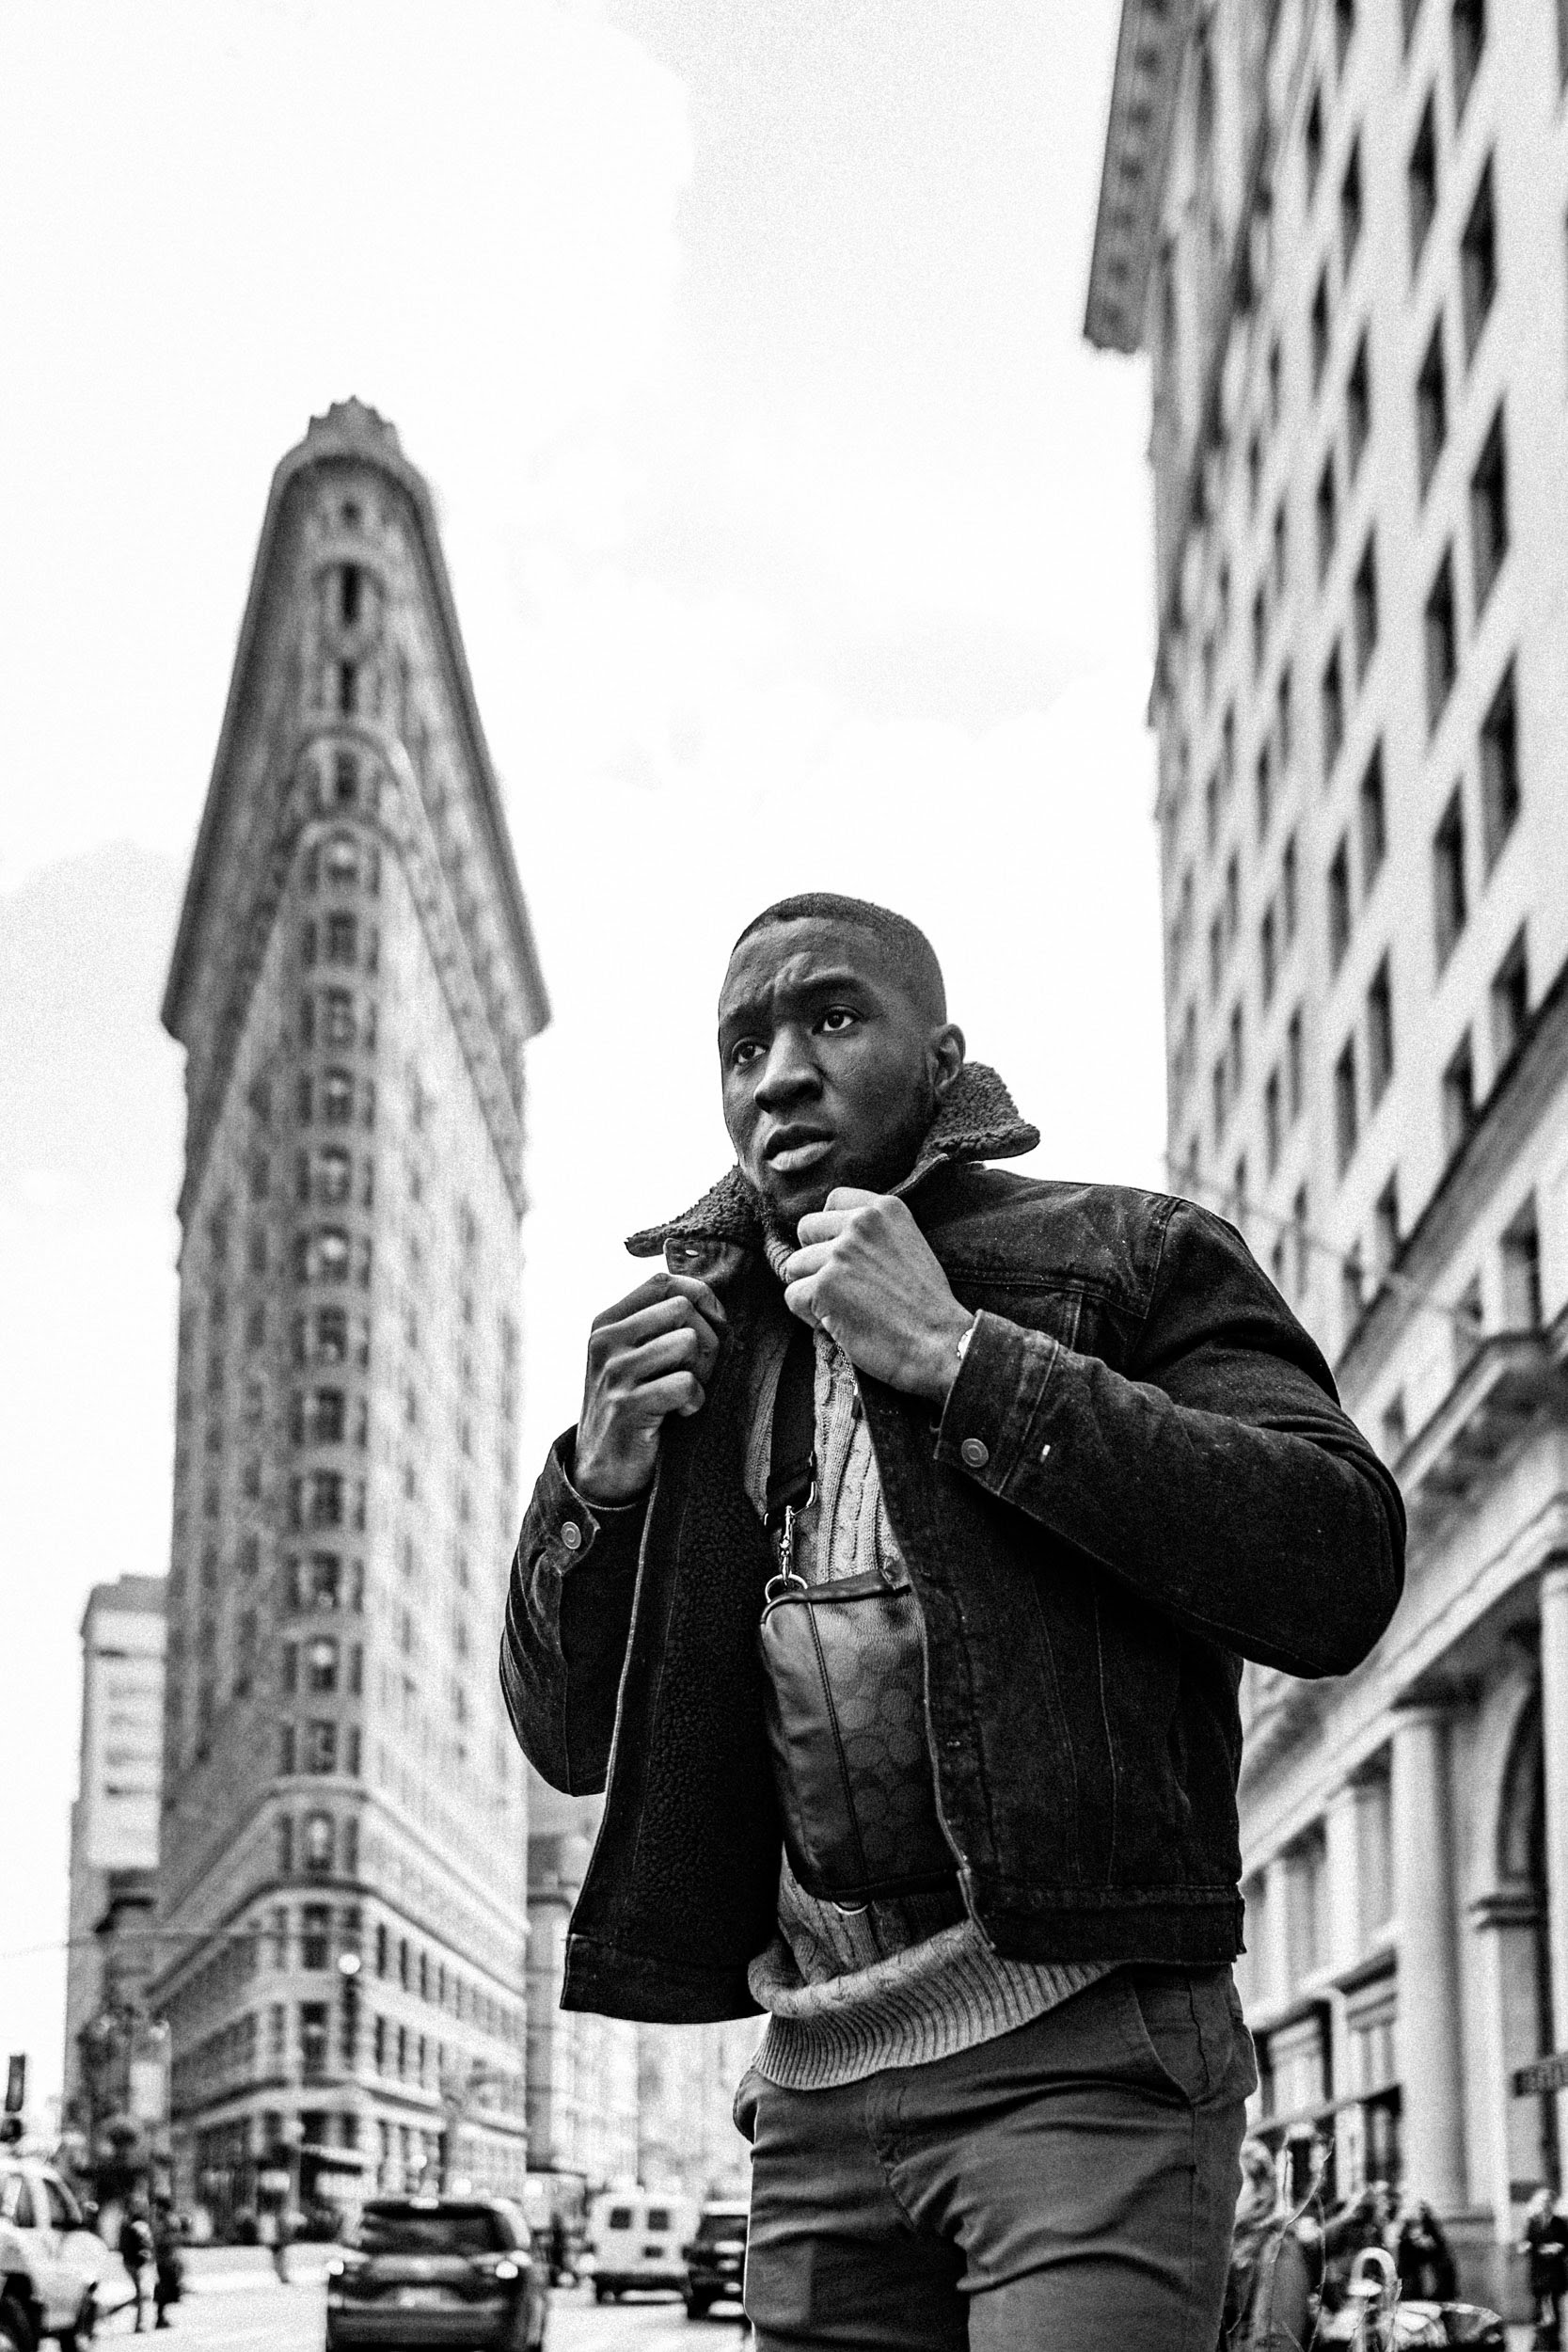 Daryl Wilson - Model in NYC - Flatiron